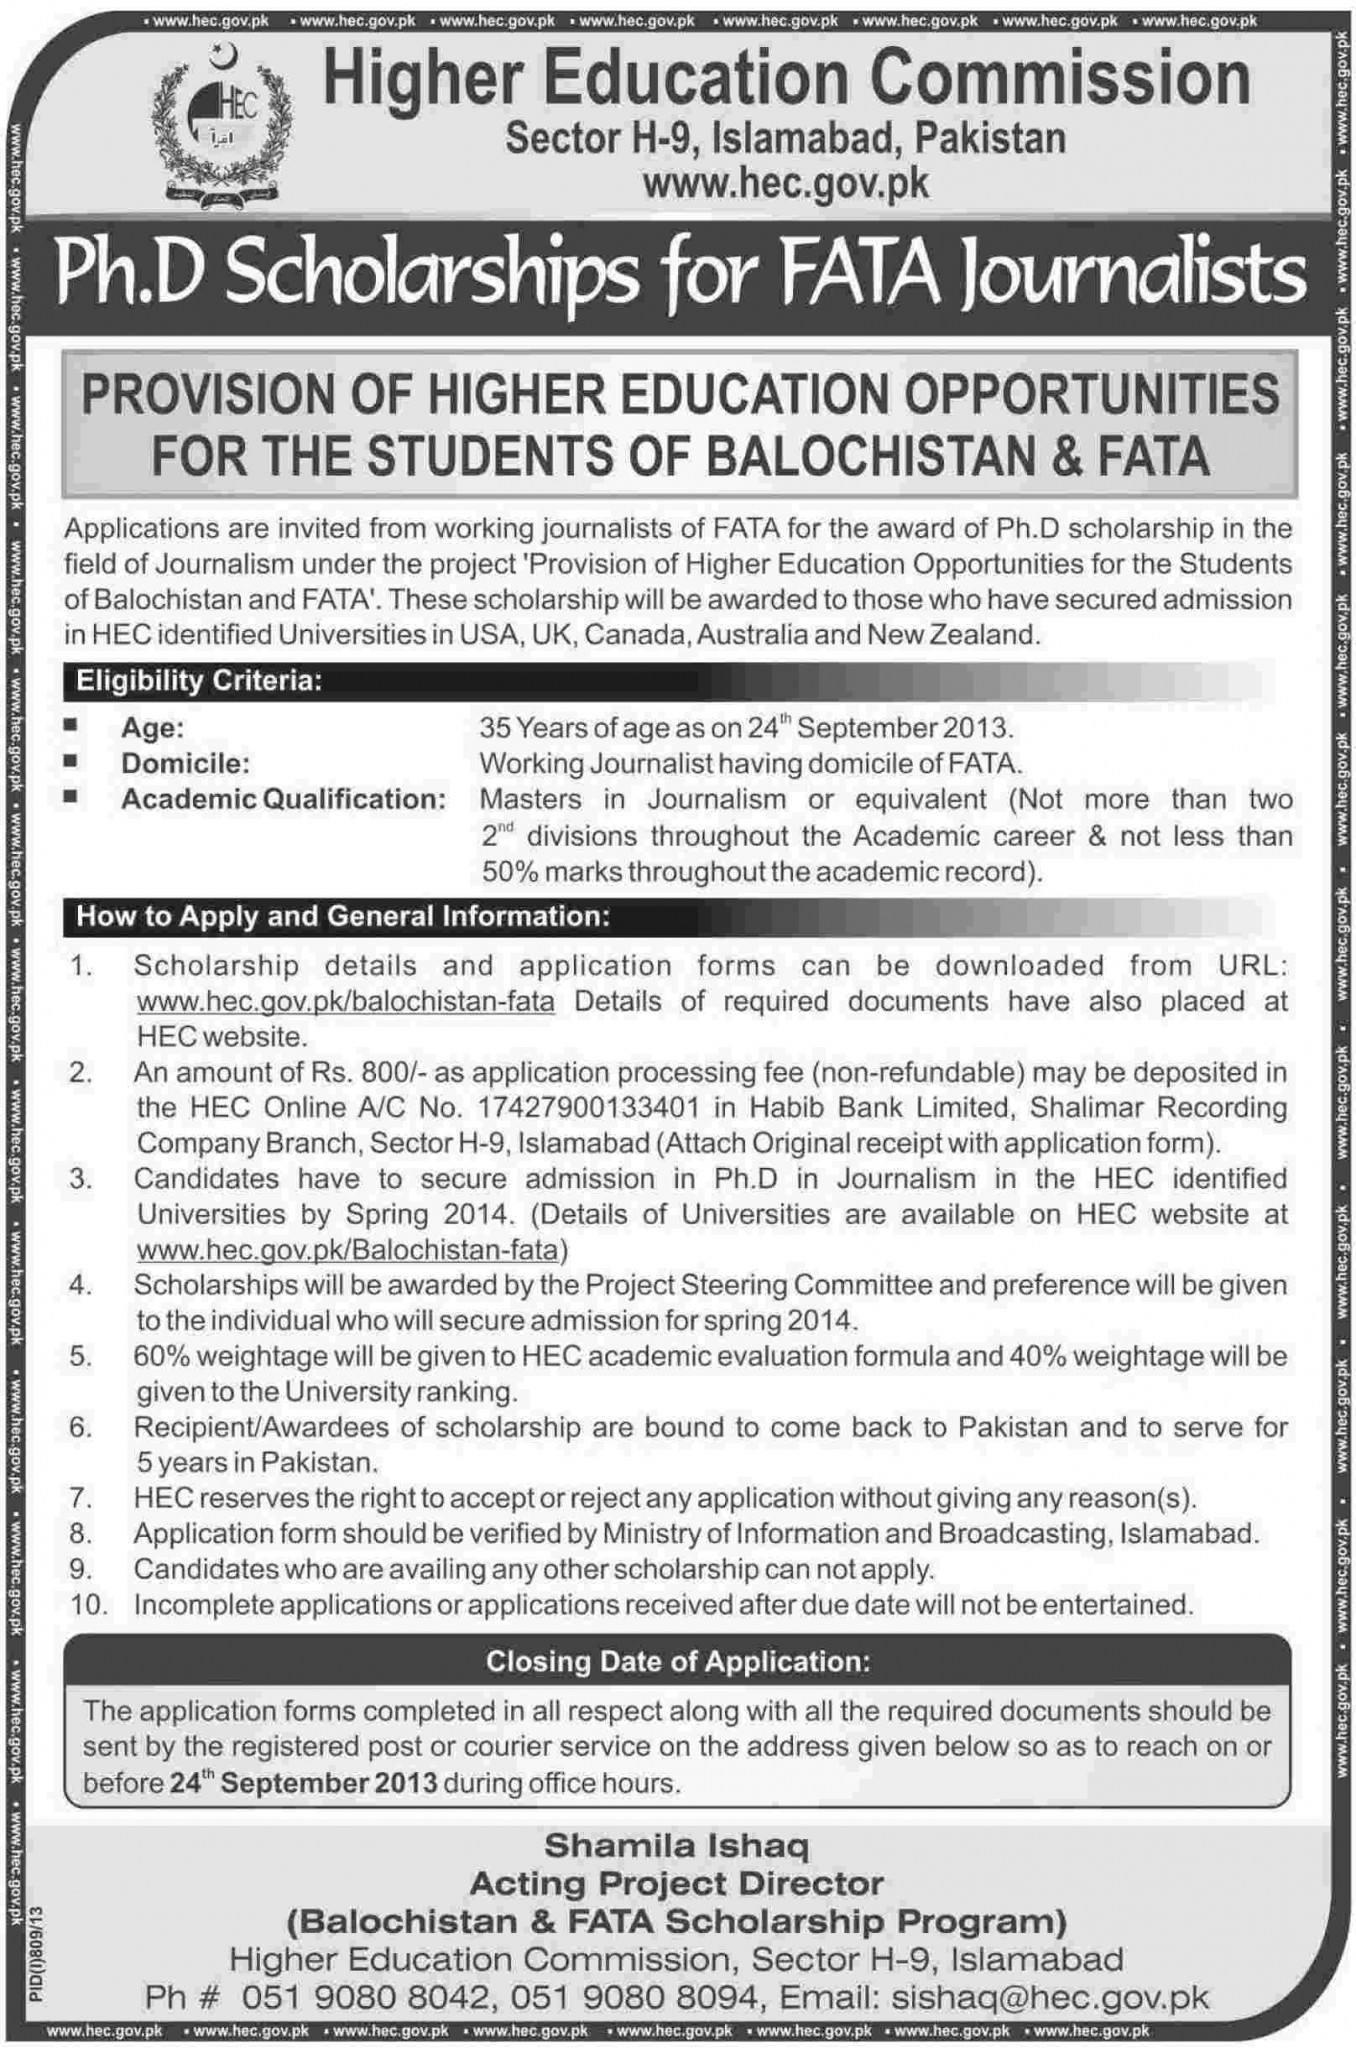 Scholarships for Journalist from FATA